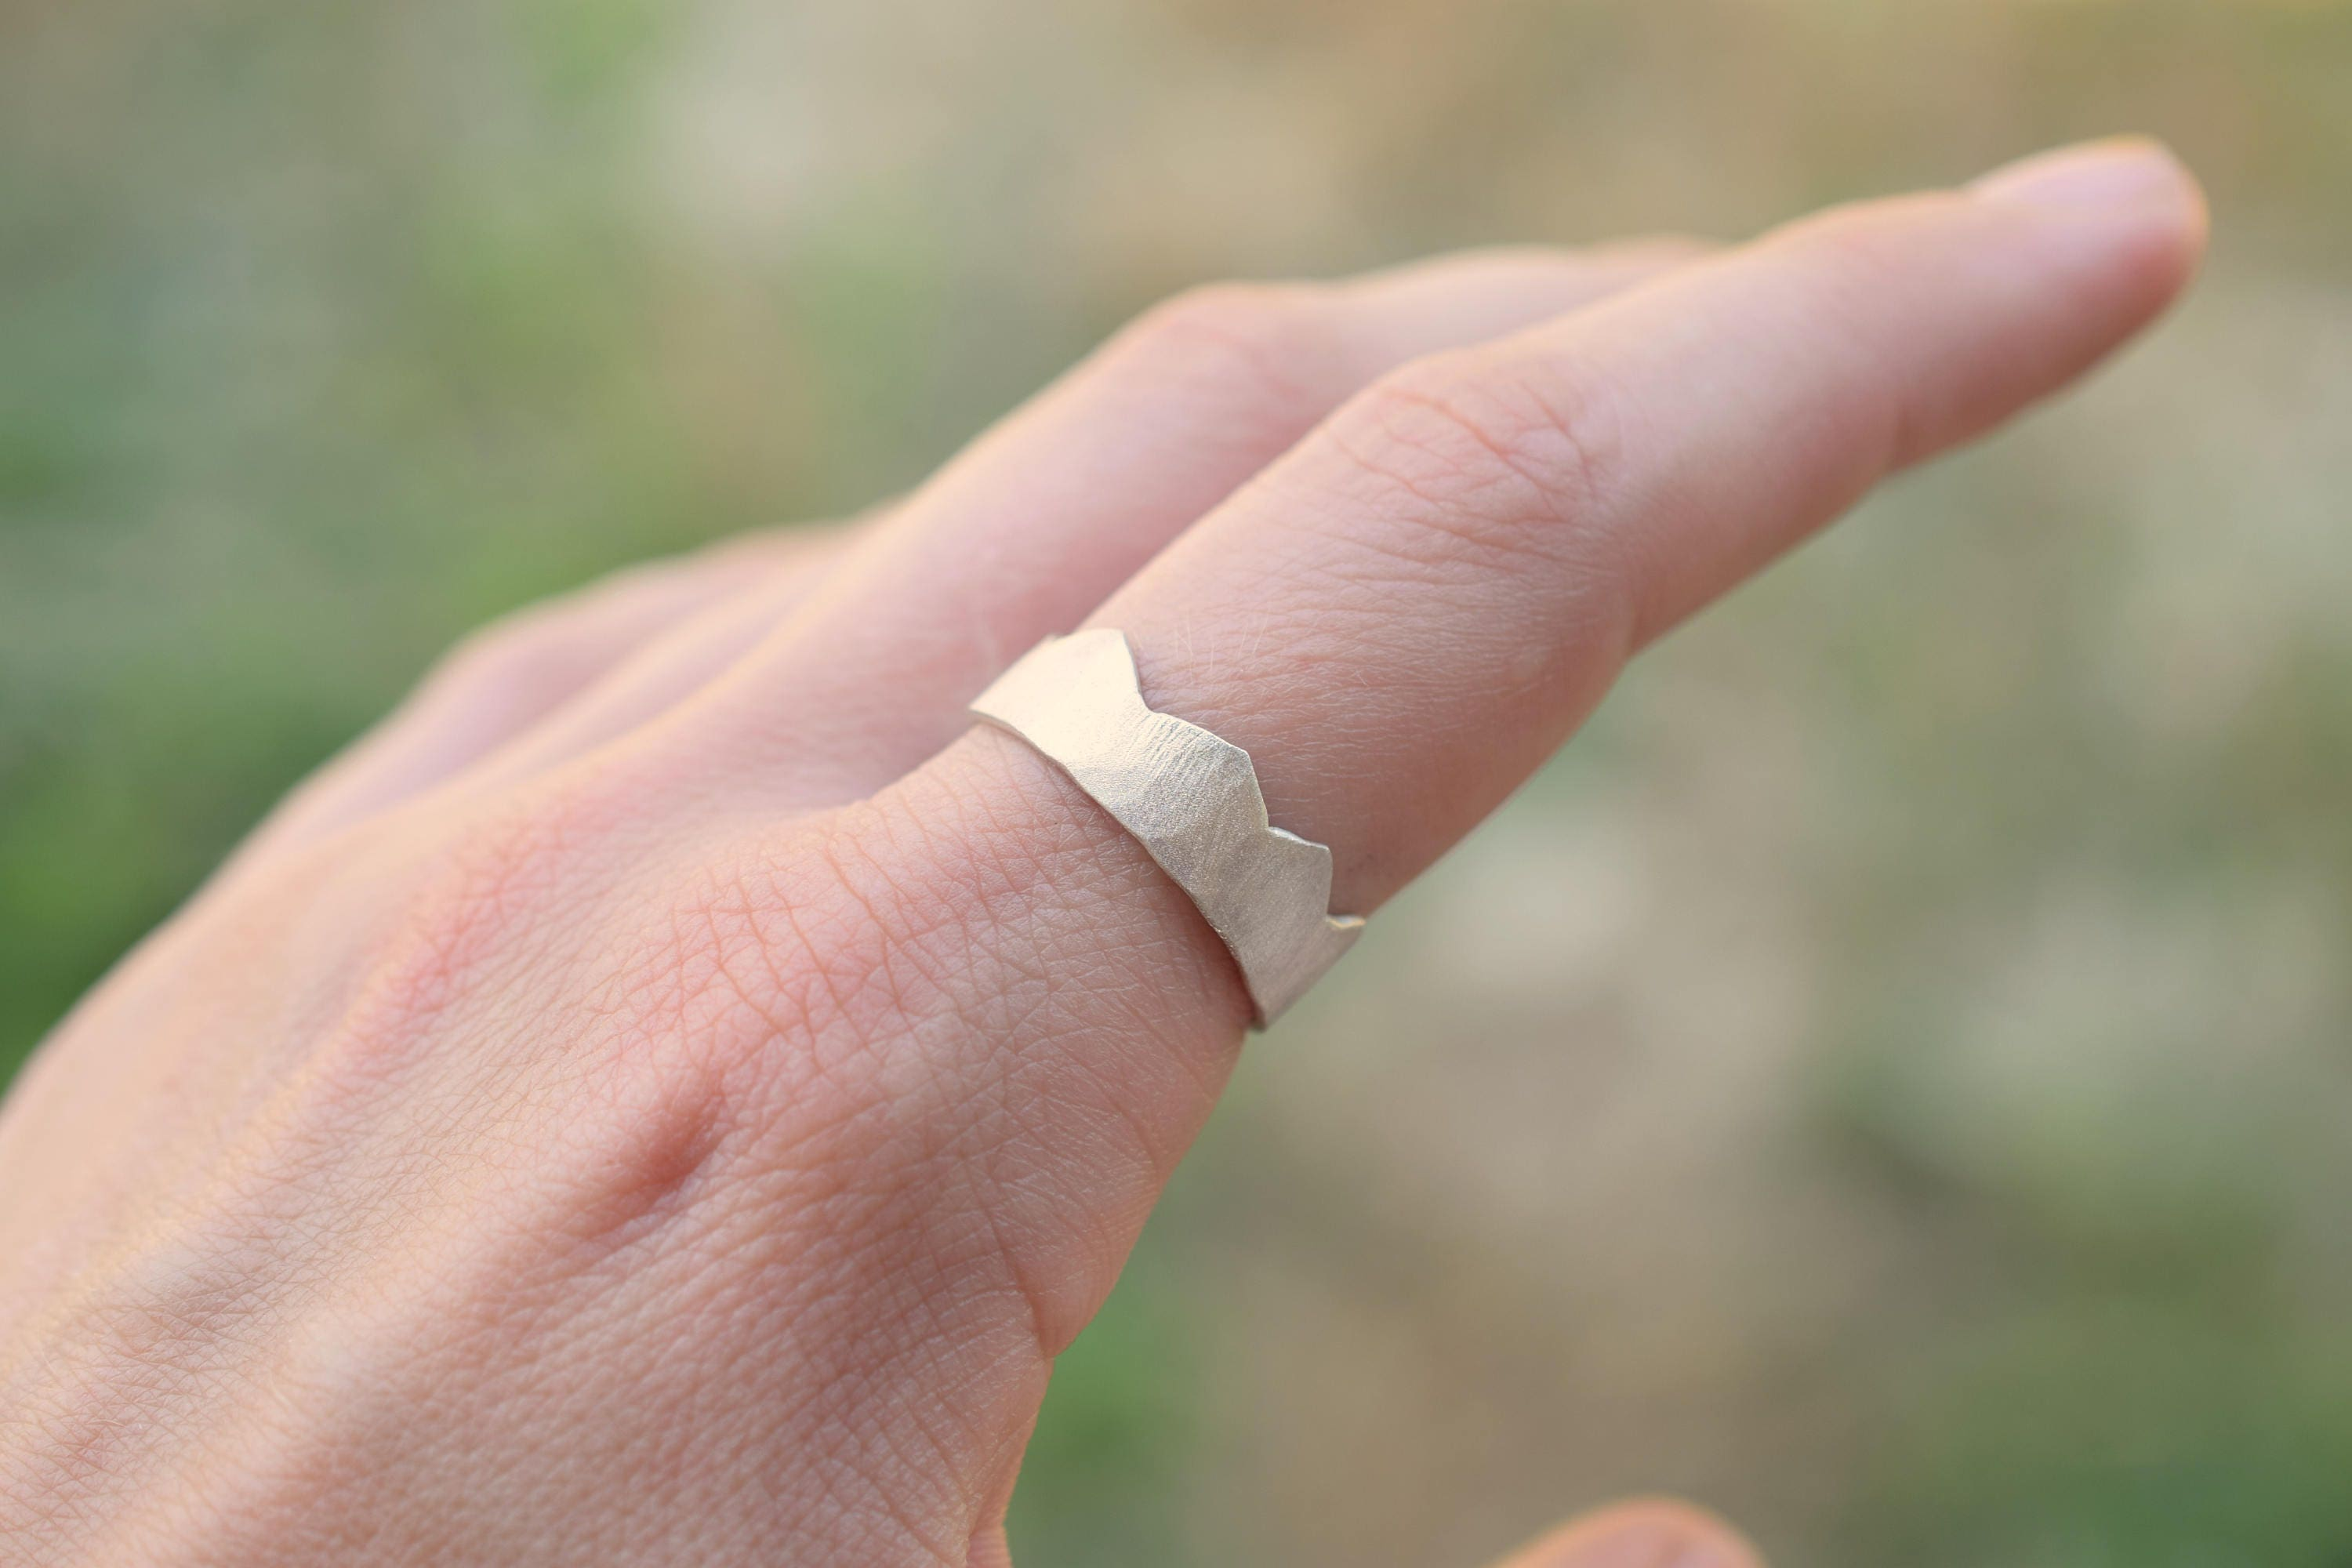 Mountain sterling silver ring crown ring wide ring 7.5 mm